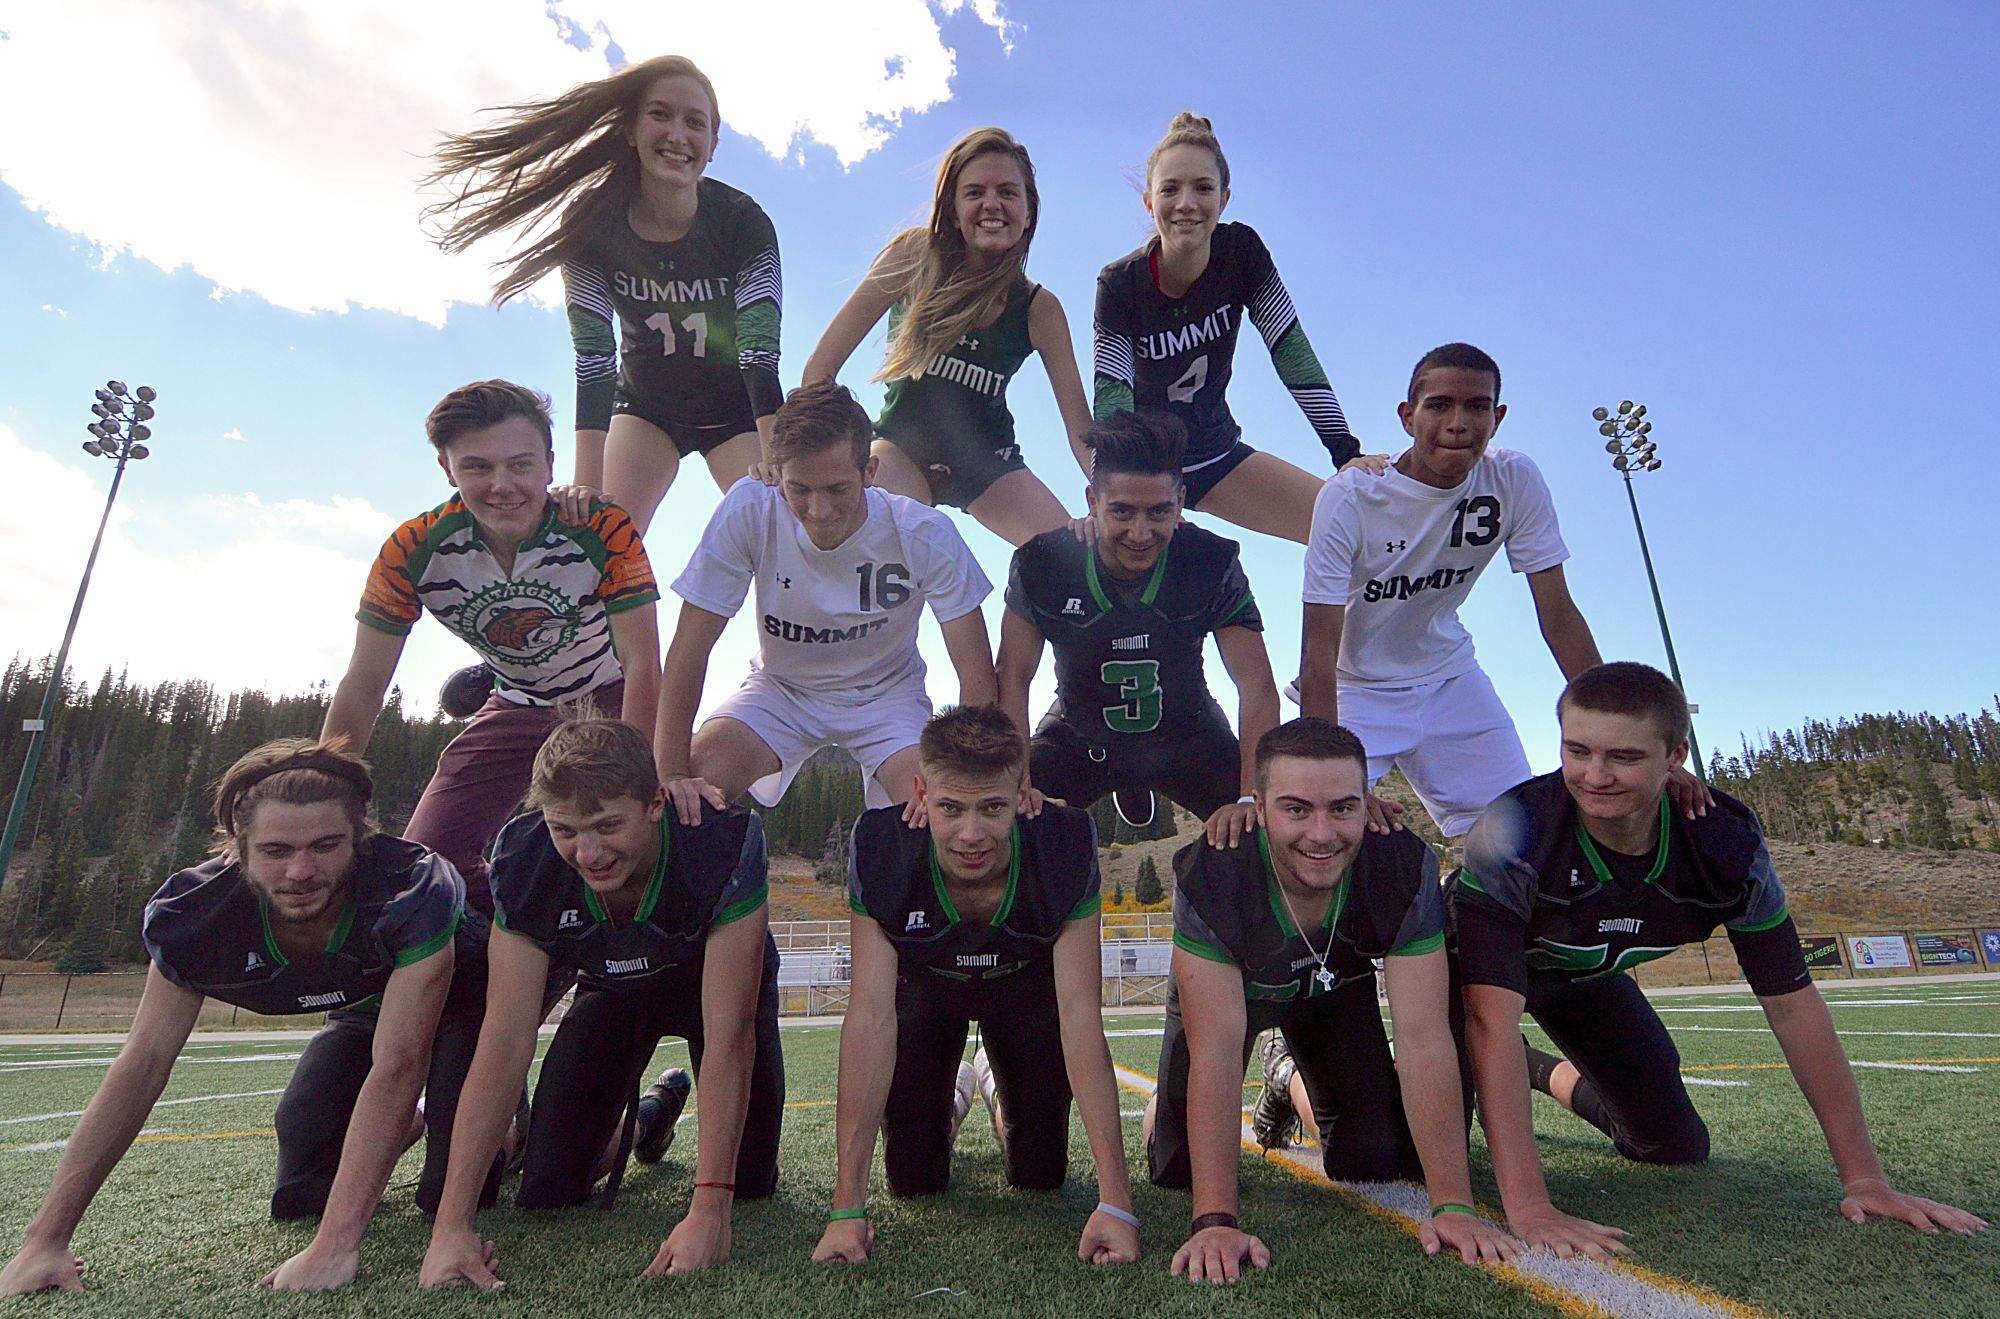 Summit High School's senior athletes and all-stars test their balance in a pyramid. Bottom row, left to right: Matthew Francomano (football No. 10), Sam Hull (football No. 7), Eric Robinson (football No. 89), Harmon Daugherty (football No. 64), Dean Vangsnes (football No. 78).Middle row, left to right: Spencer Tyson (MTB), Cole Catron (soccer No. 16), Adolfo Vasquez (football No. 3), Carlos Martinez (soccer No. 13).Top row, left to right: Elle Lyne-Schiffer (volleyball No. 11), Katie Mason (XC), Jemma Jackman (volleyball No. 4).